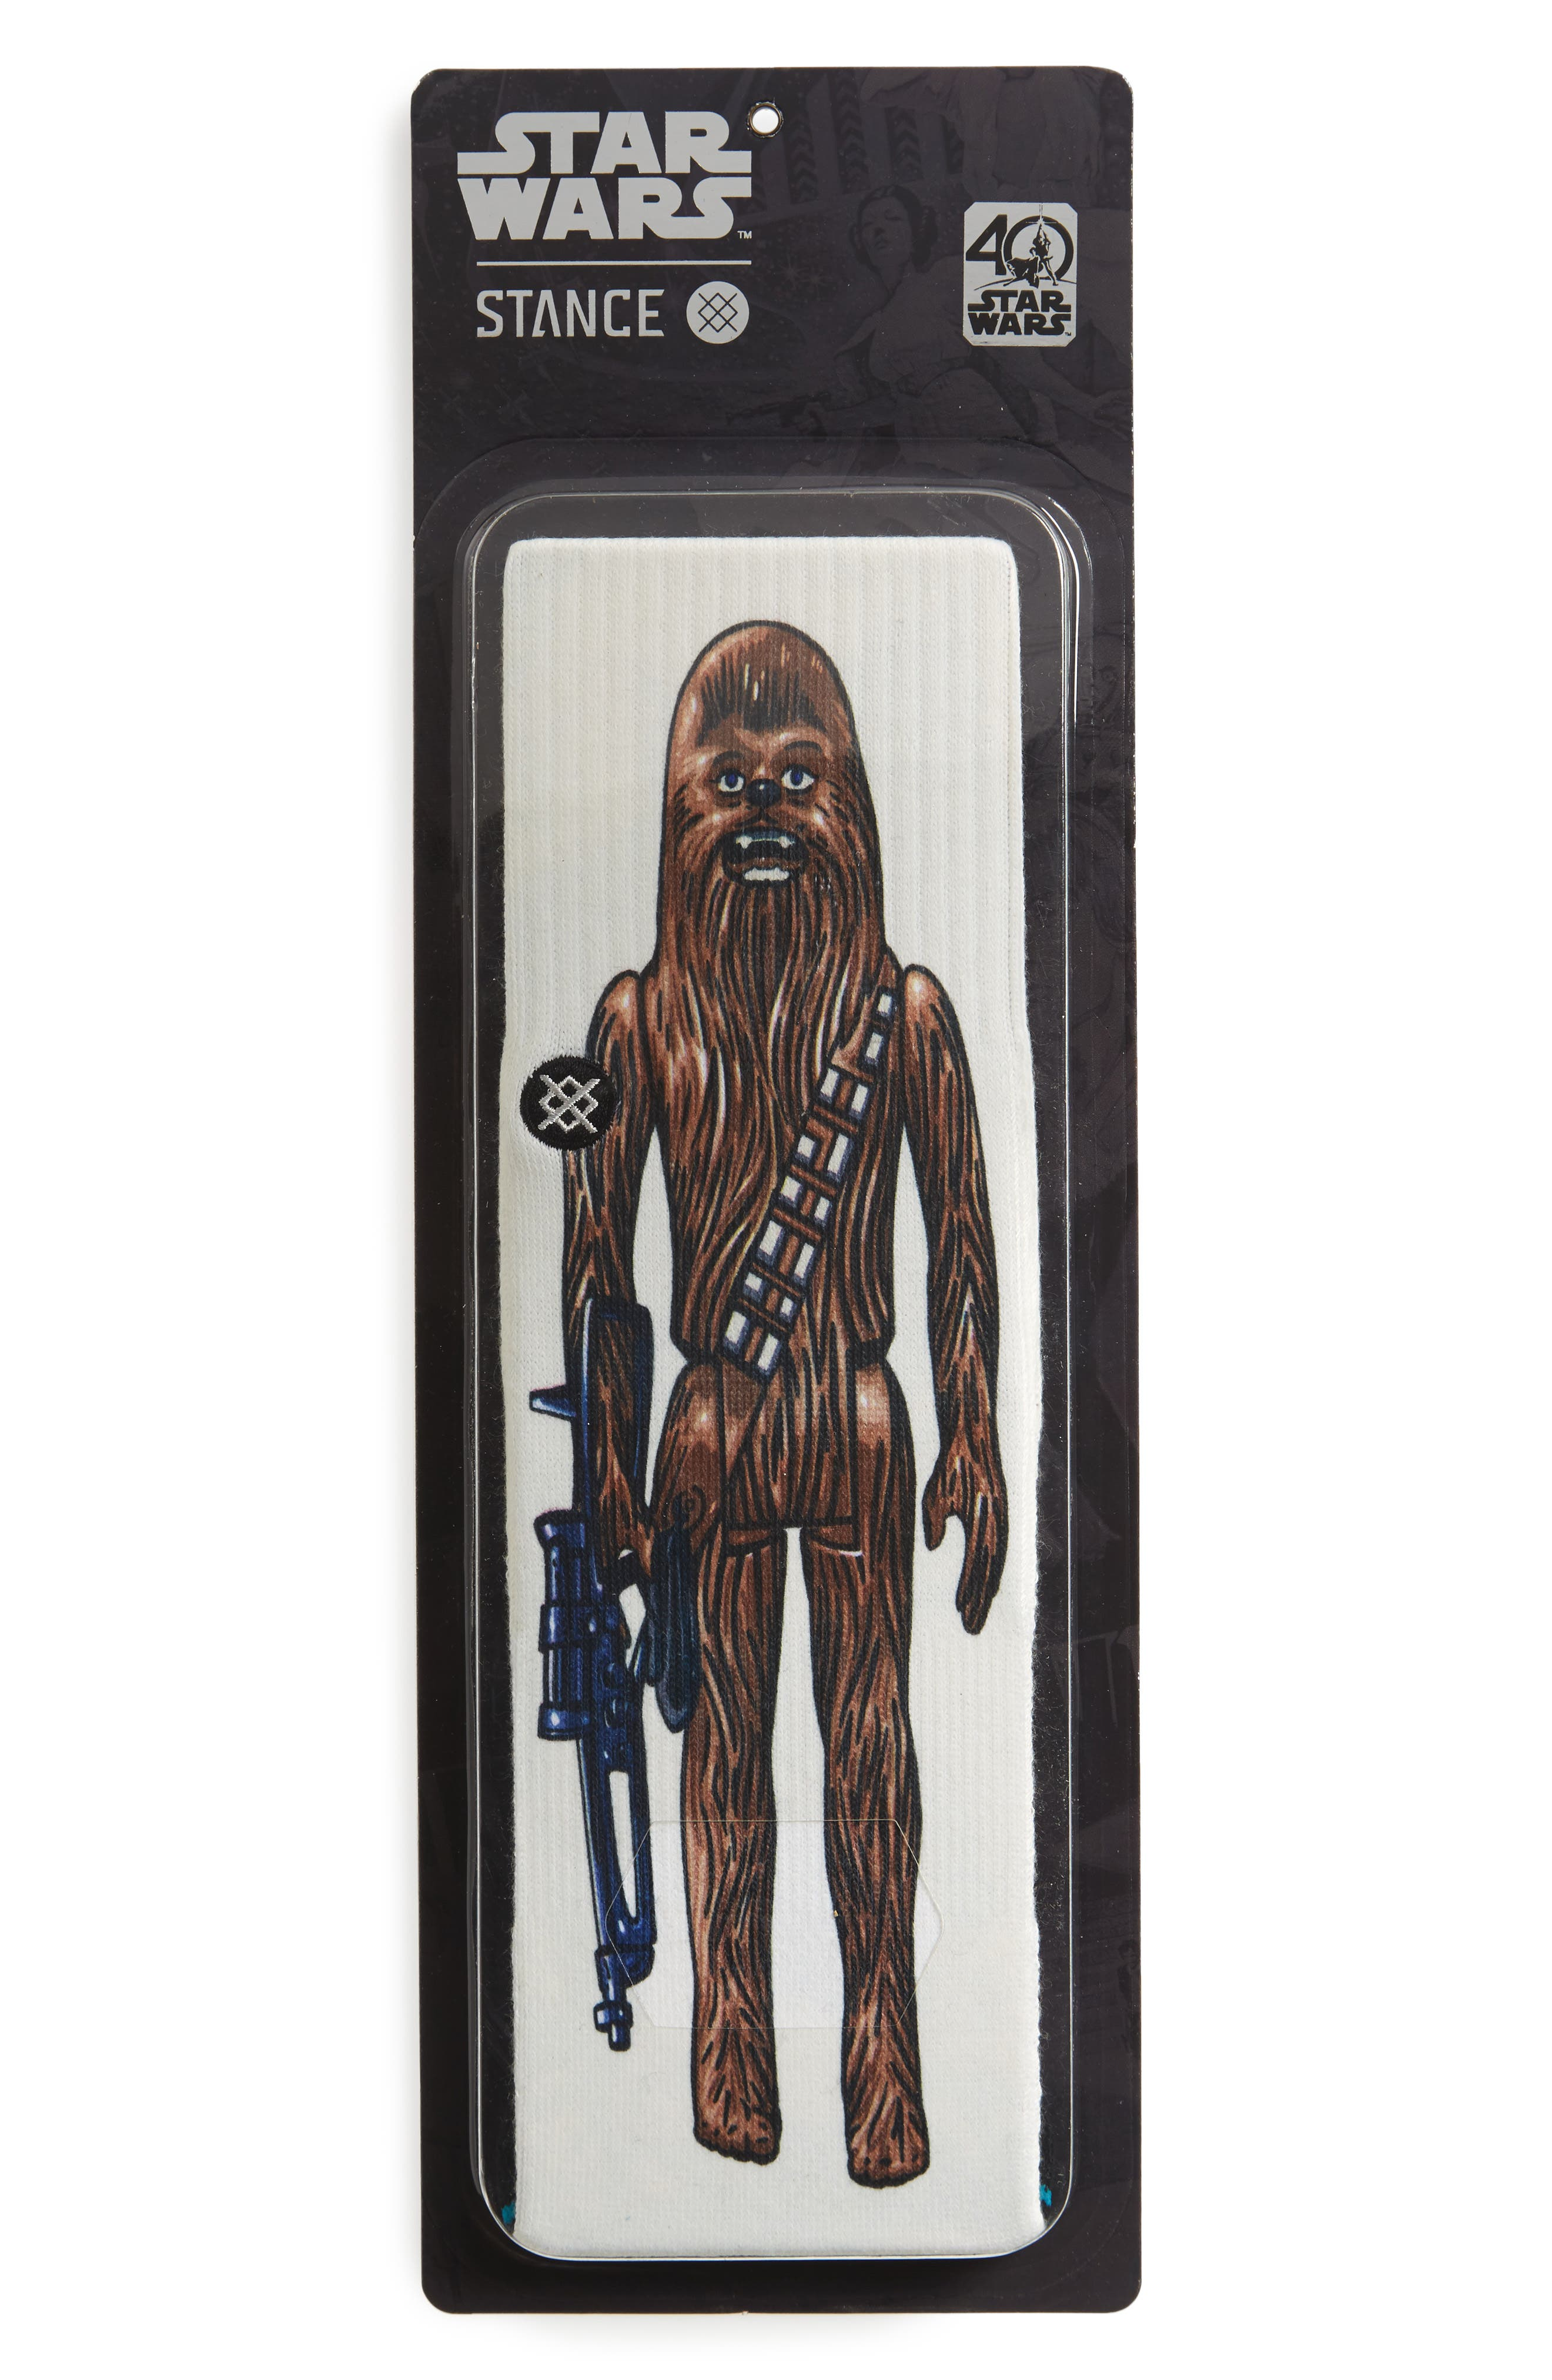 Star Wars<sup>™</sup> Smuggler Trade Socks,                             Alternate thumbnail 2, color,                             900